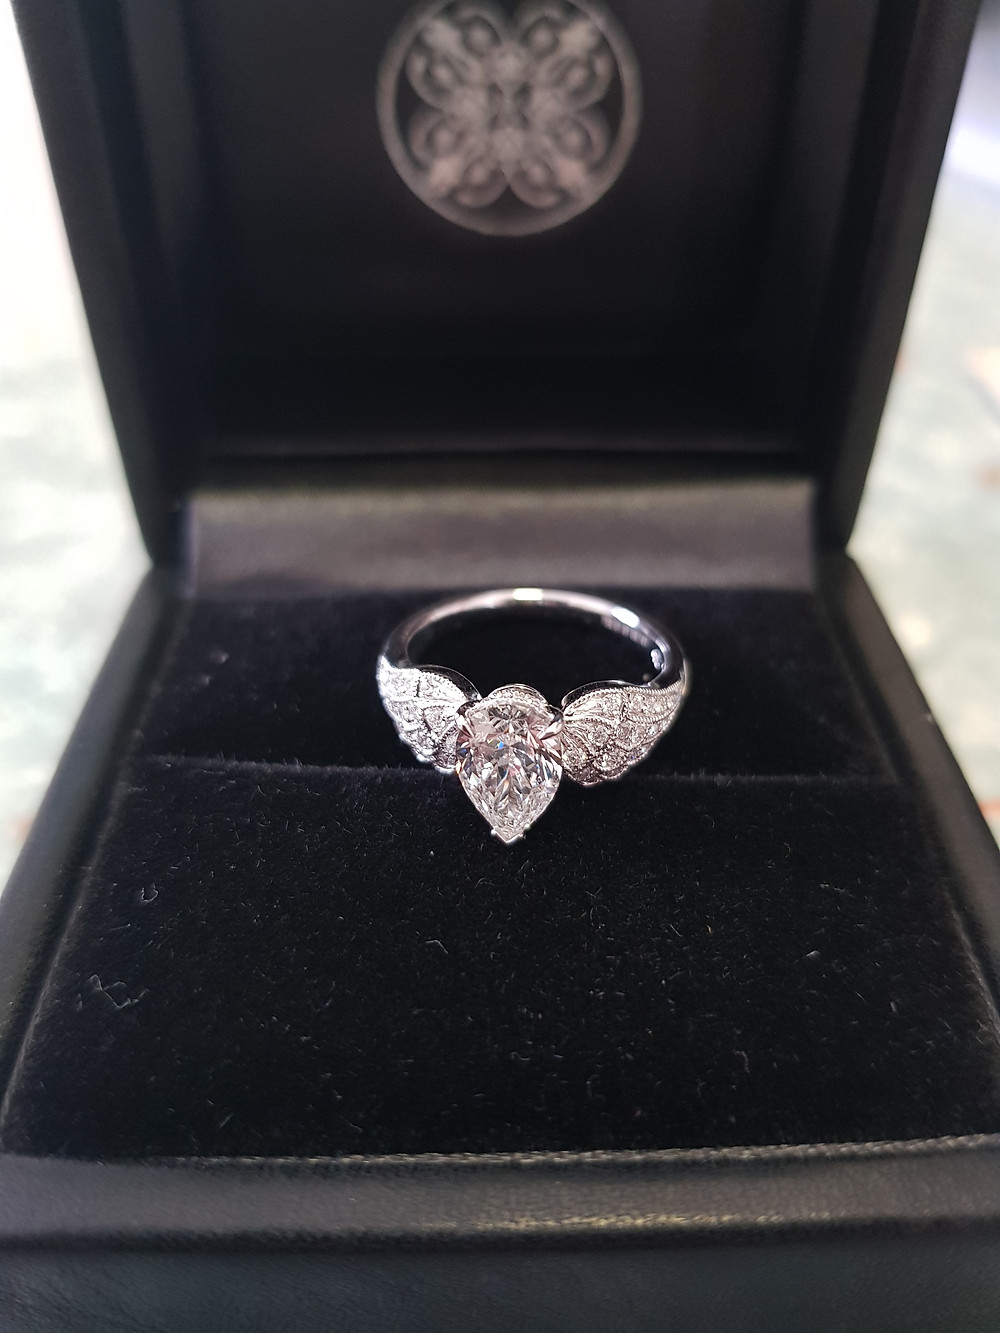 The custom designed ring that I got for my fiancé. The angel wing was inspired by some images I found on the internet and brought to life by expert designers.